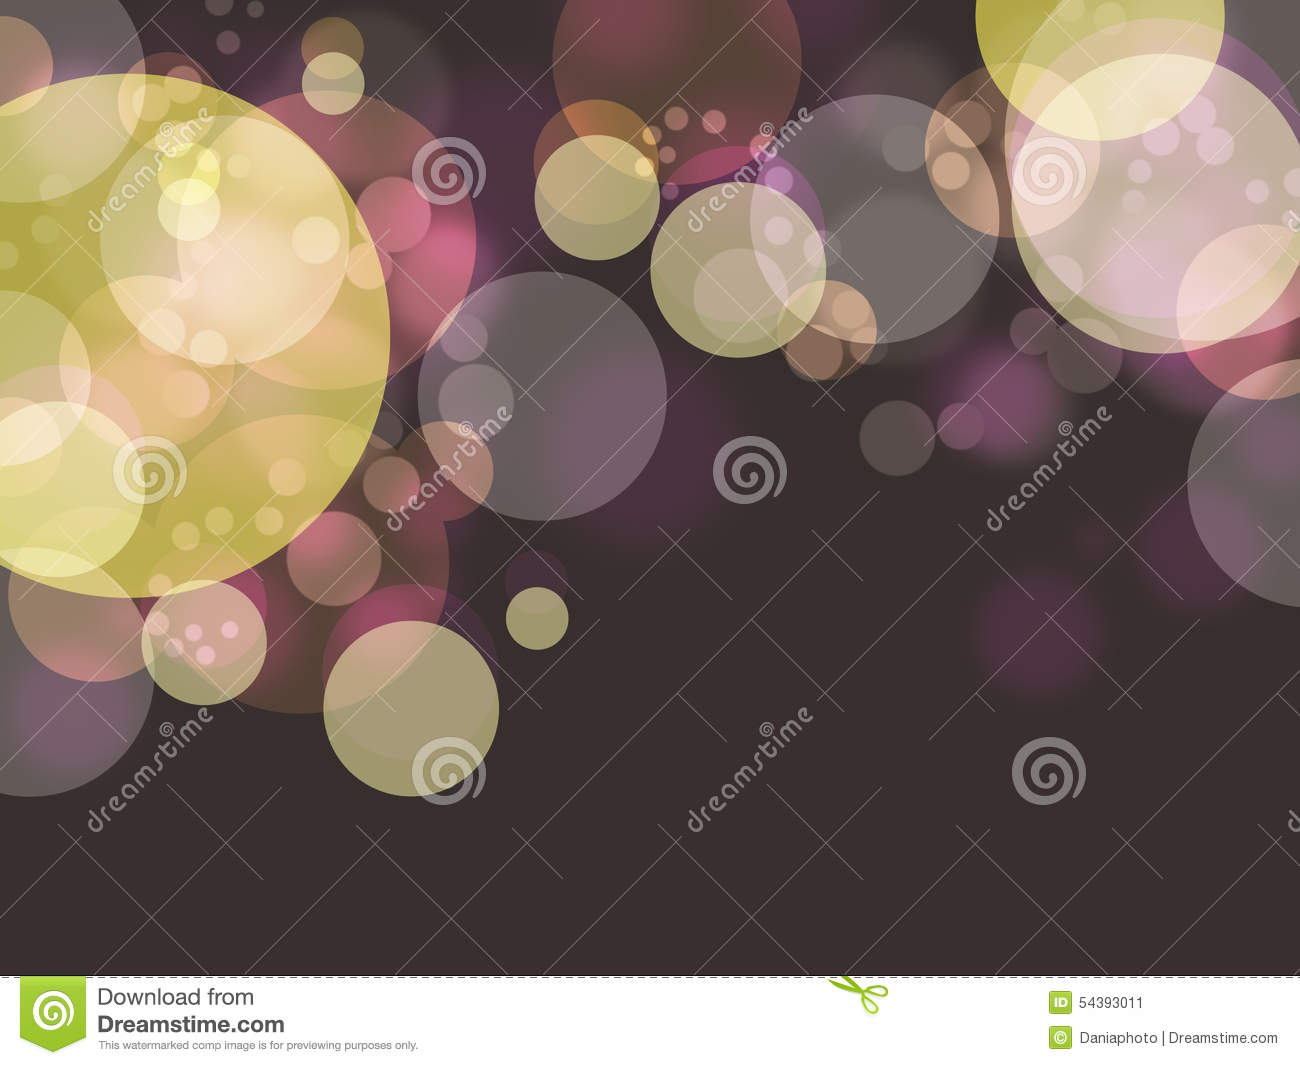 Colorful bubble in dark background